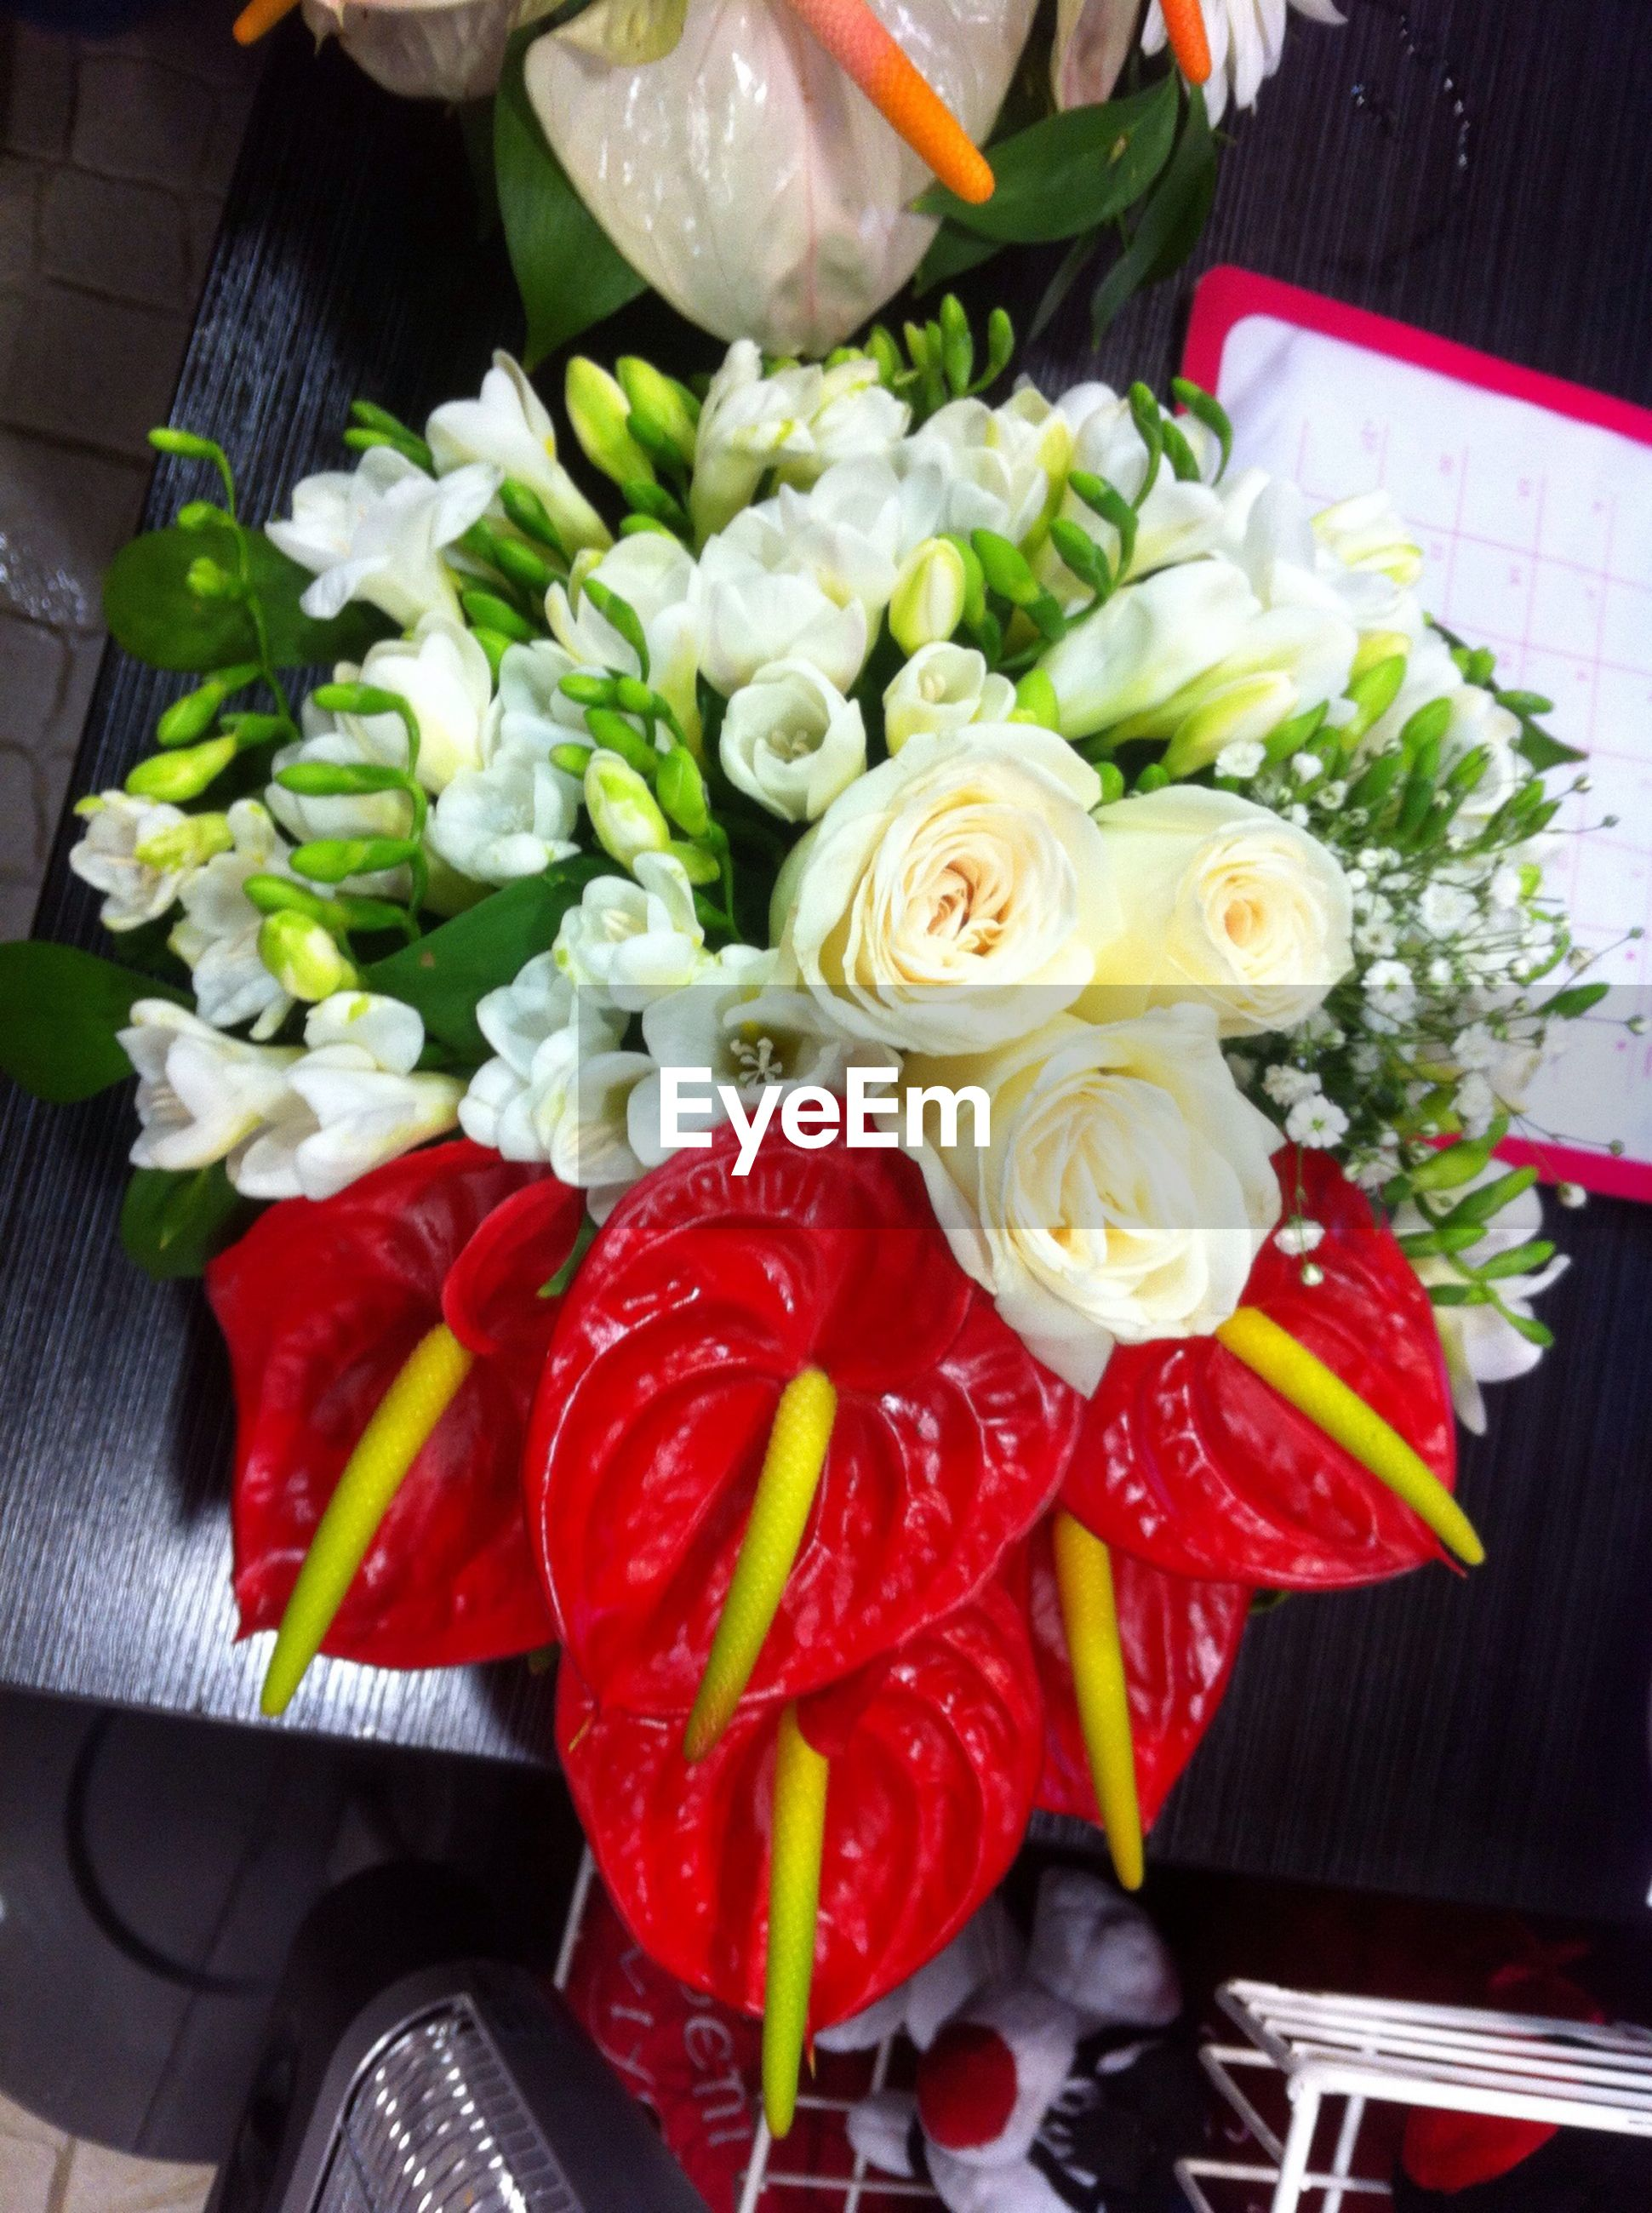 freshness, indoors, flower, high angle view, food, food and drink, table, bouquet, still life, petal, variation, close-up, vegetable, healthy eating, red, directly above, fragility, no people, vase, bunch of flowers